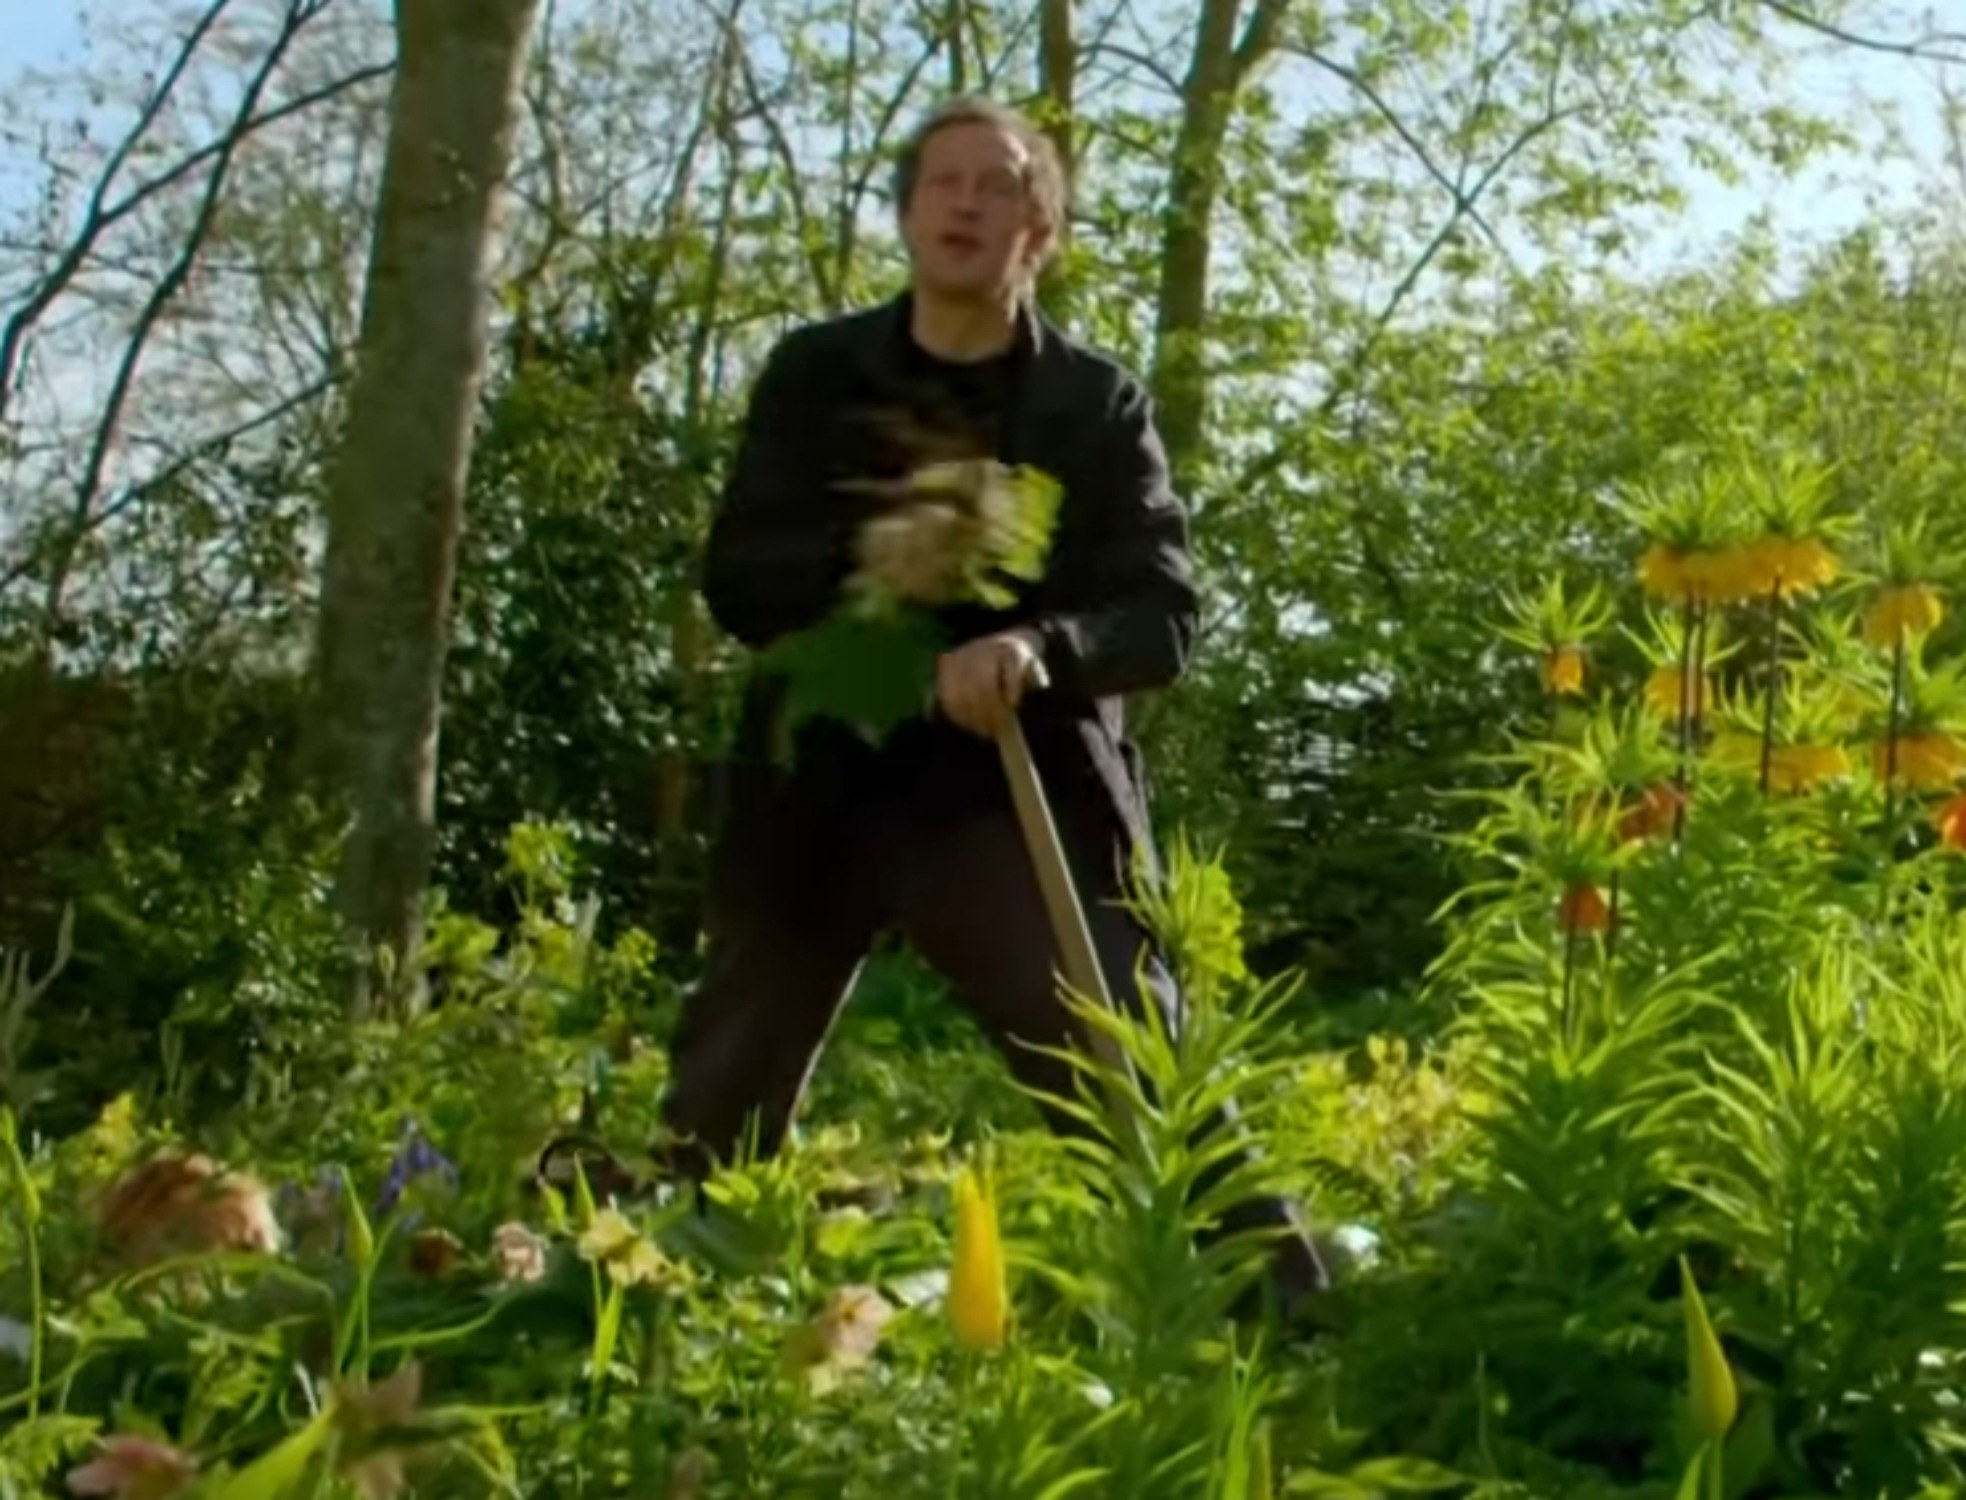 Gardeners' World 2017 – Episode 15 – Jun 30, 2017